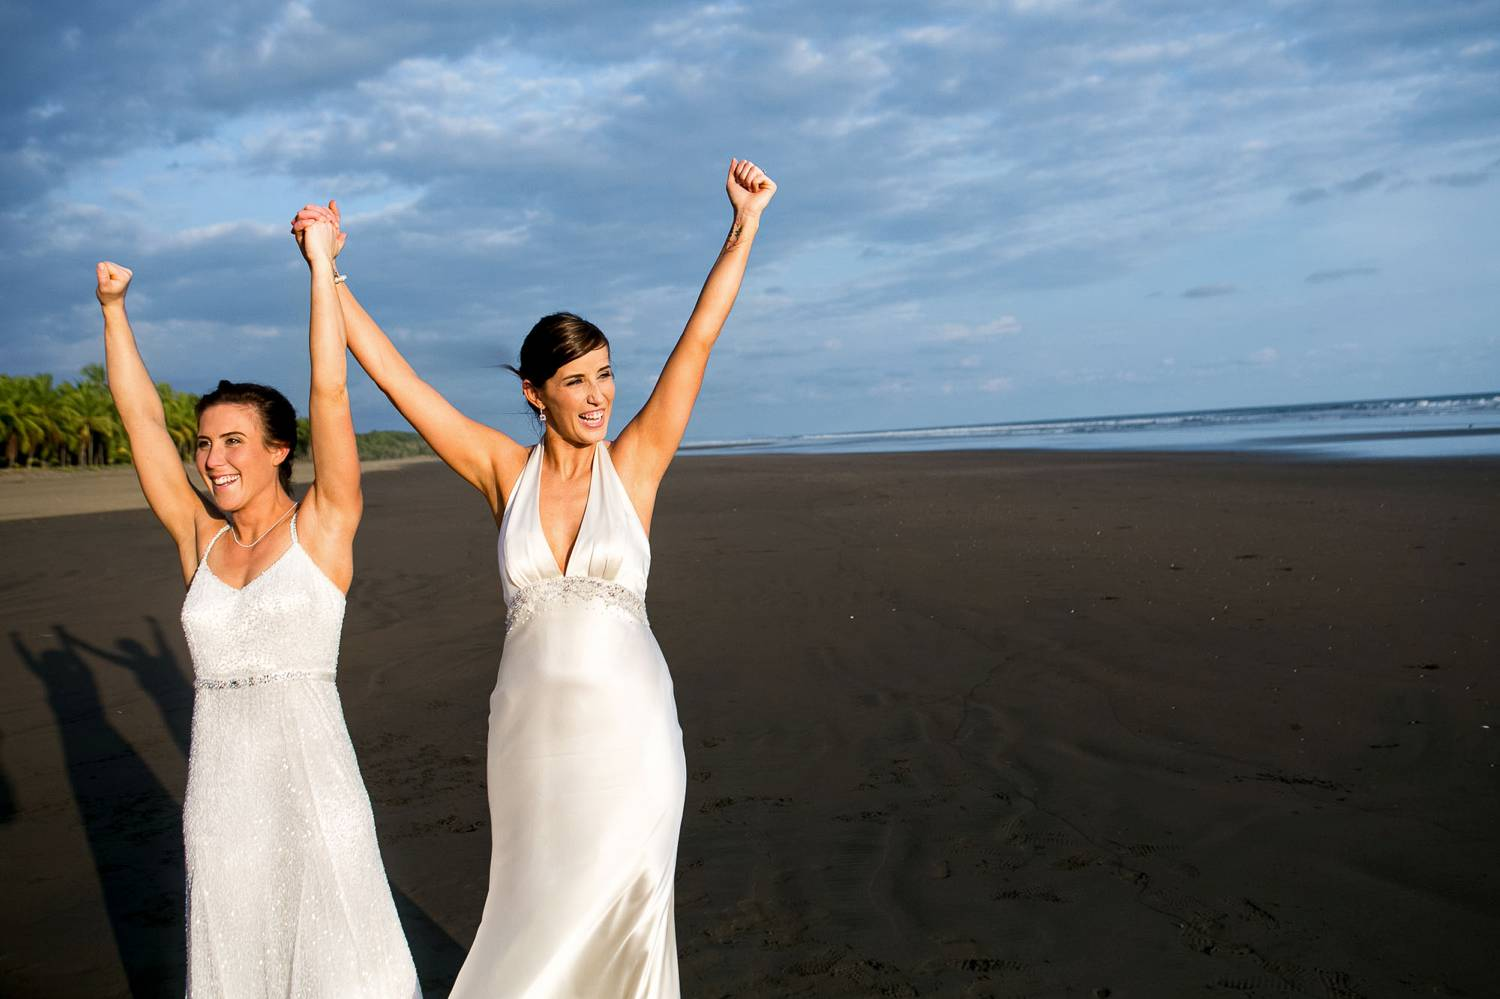 Client Experience: A wide-angle photo by Kevin Heslin depicts two brides in white silk dresses with their arms raised to the sky on the beach.